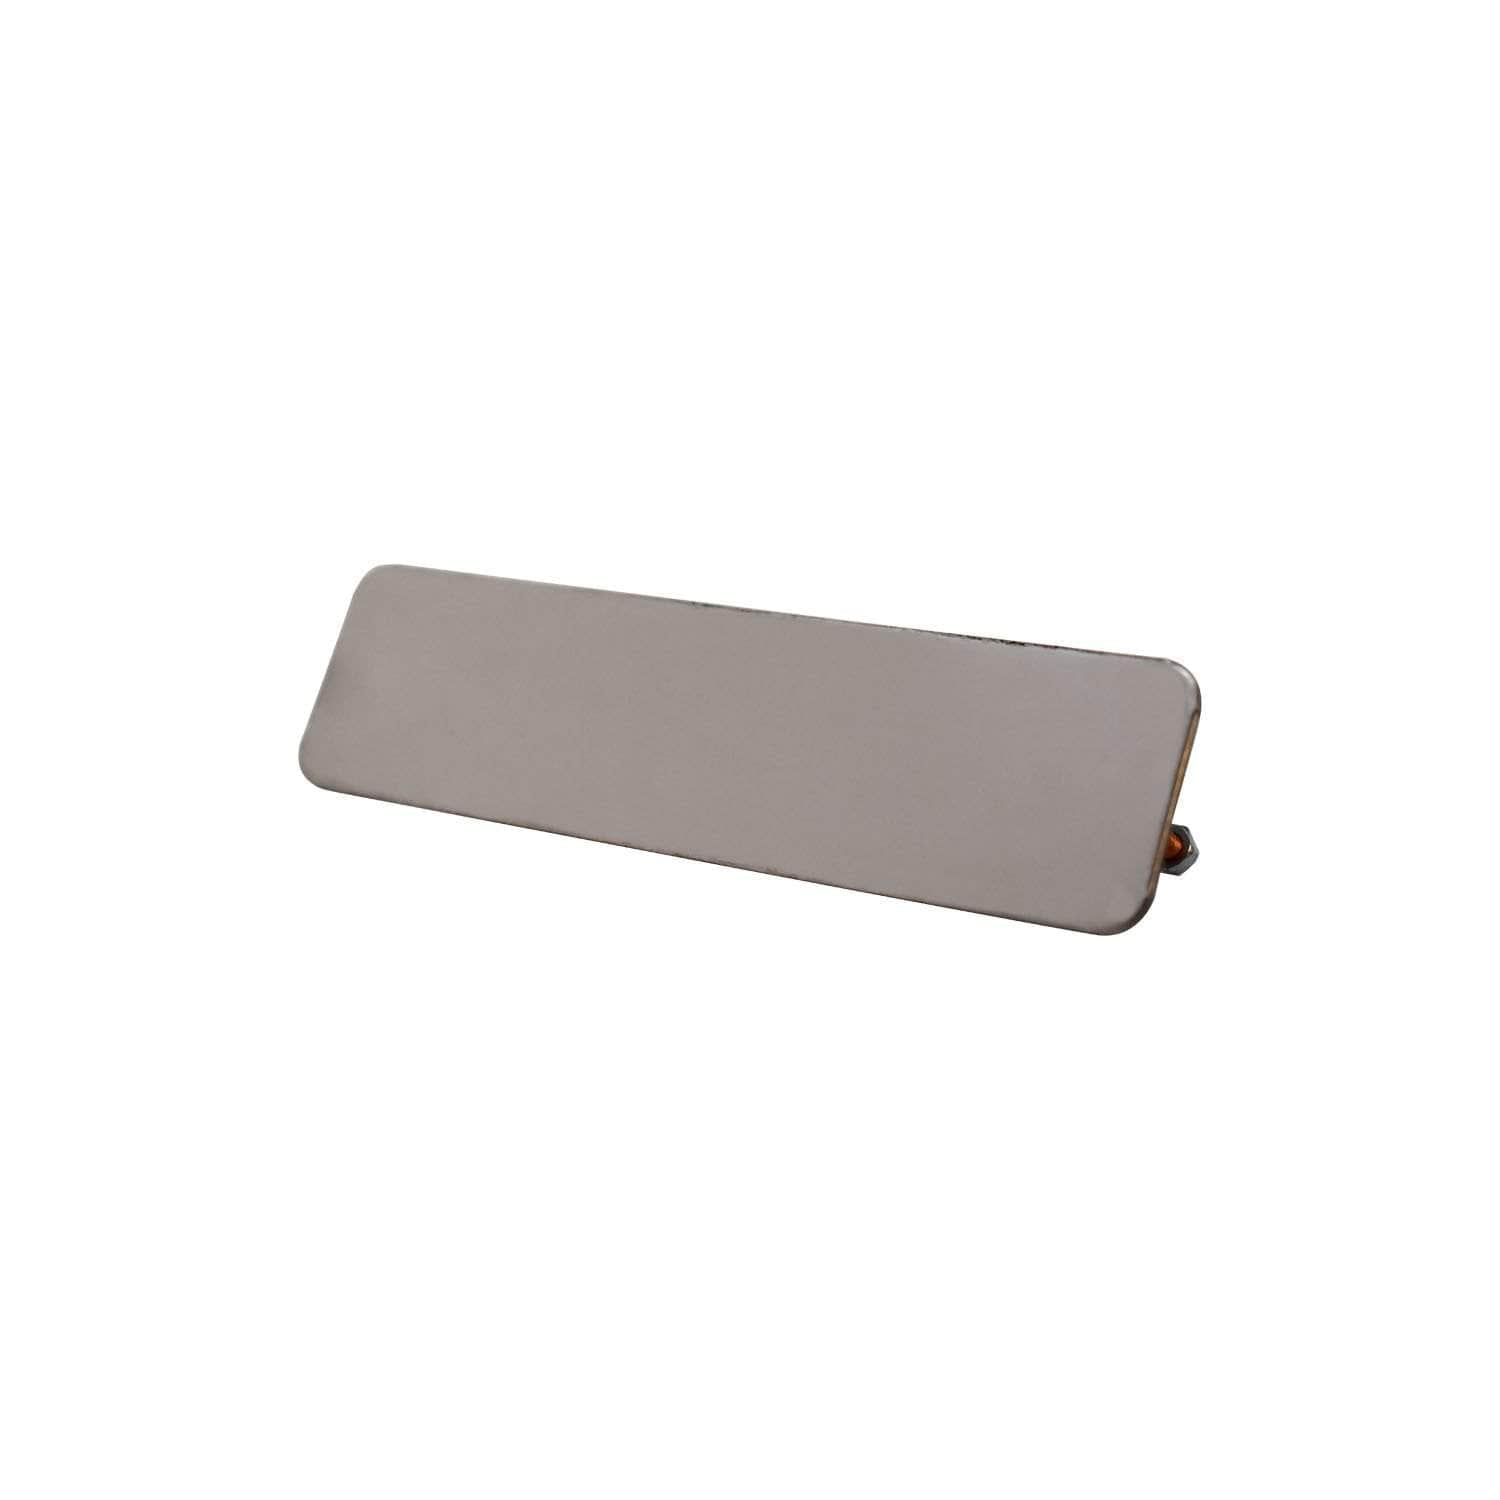 Air Wheel Blank Plate for use with 'Deluxe' Aga range cooker